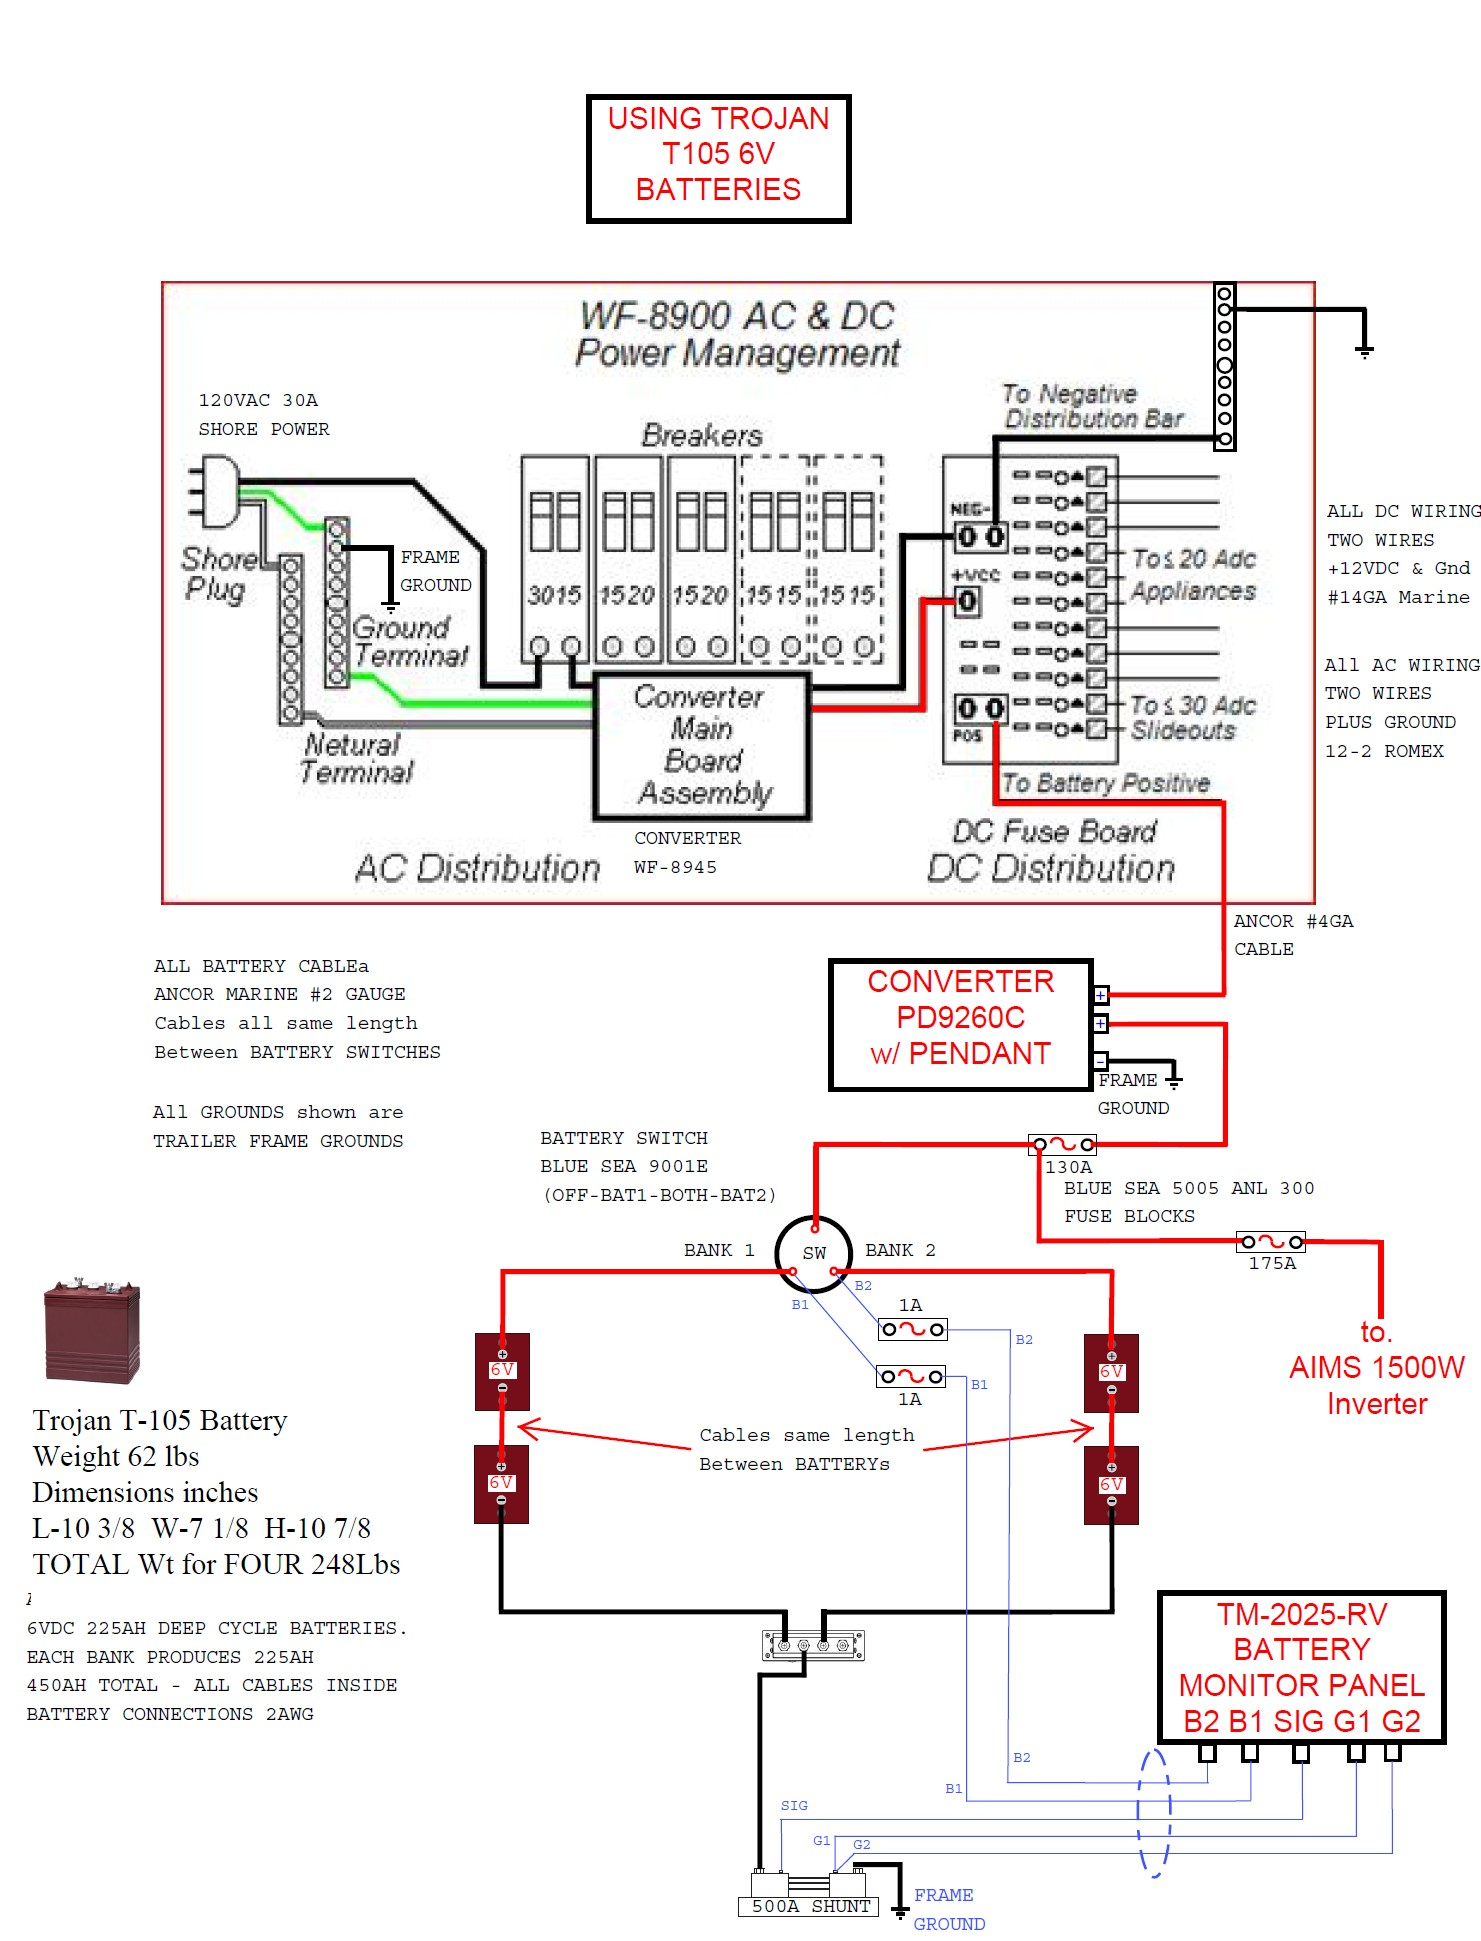 hight resolution of jayco eagle wiring diagram sample navistar engine diagram jayco eagle wiring diagram wiring diagram for jayco